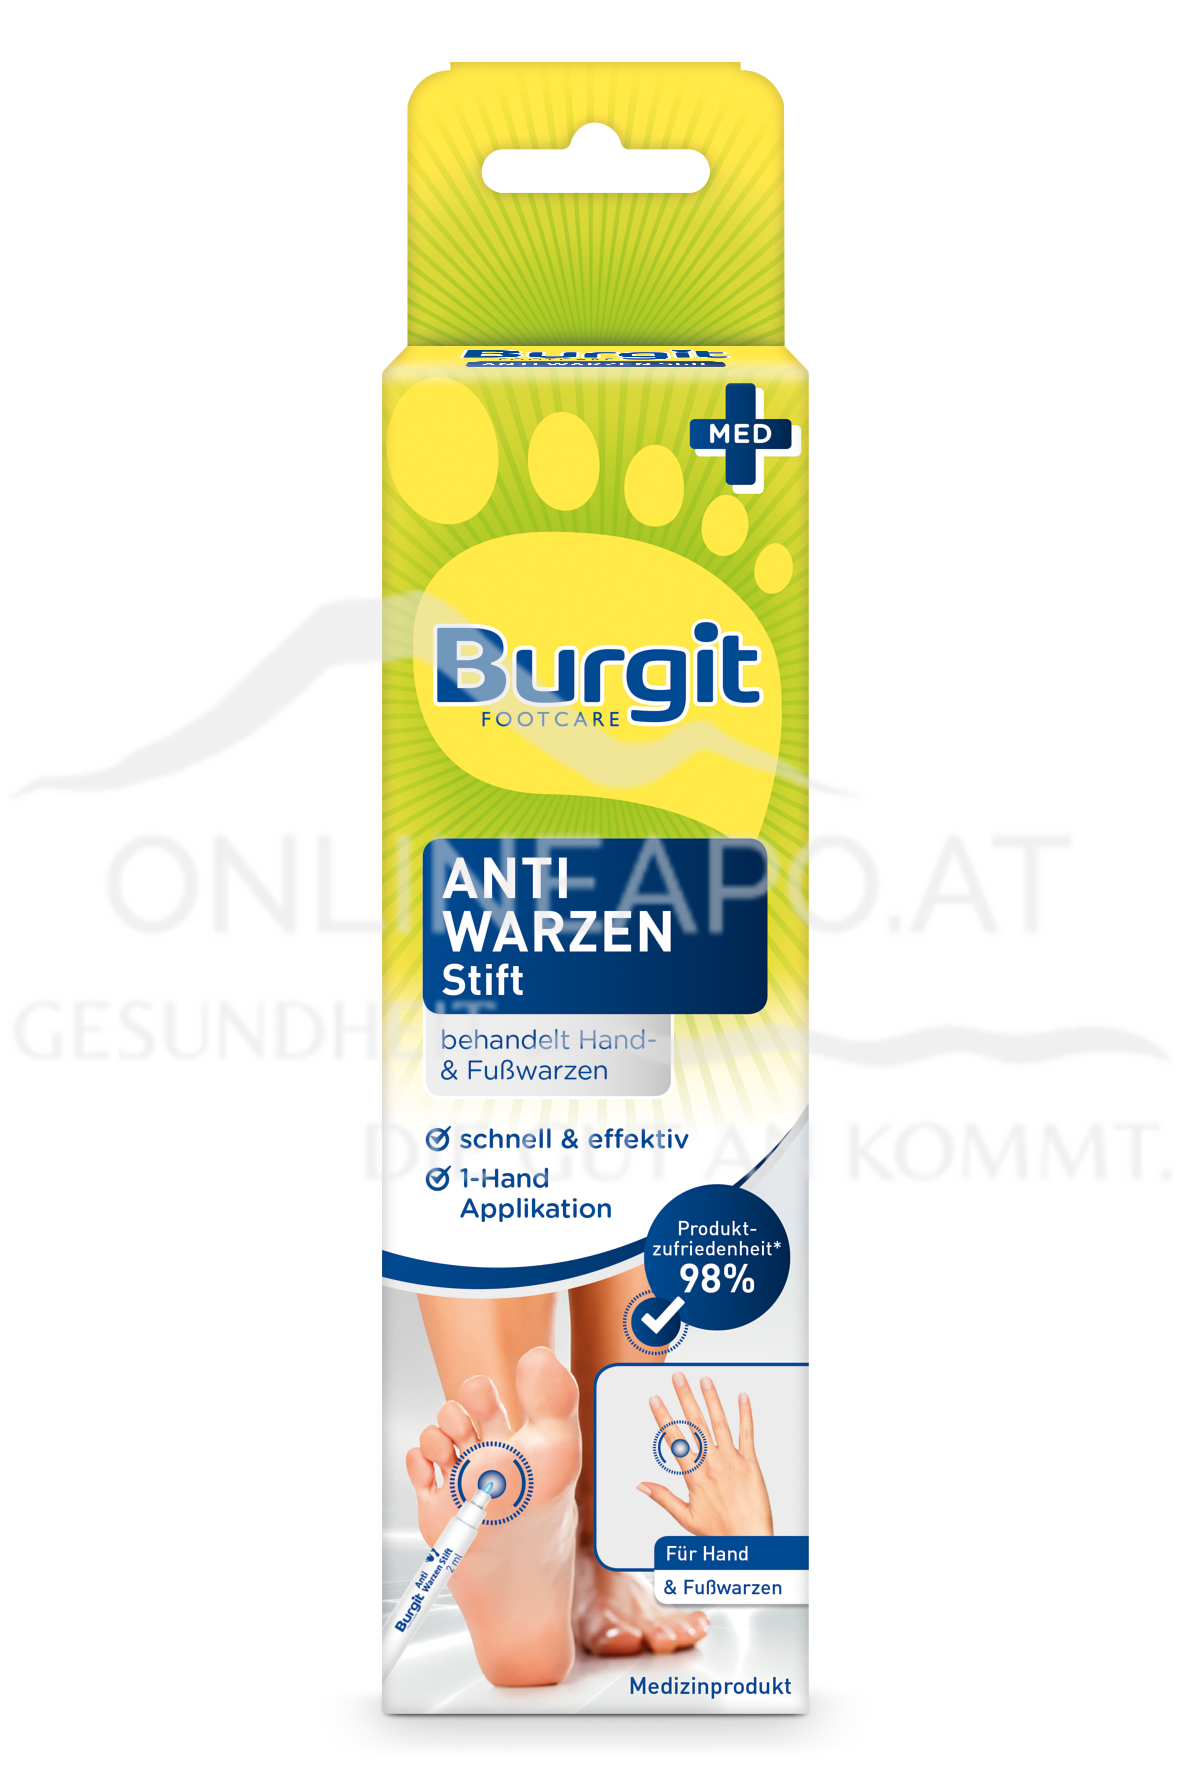 Burgit Anti Warzen Stift